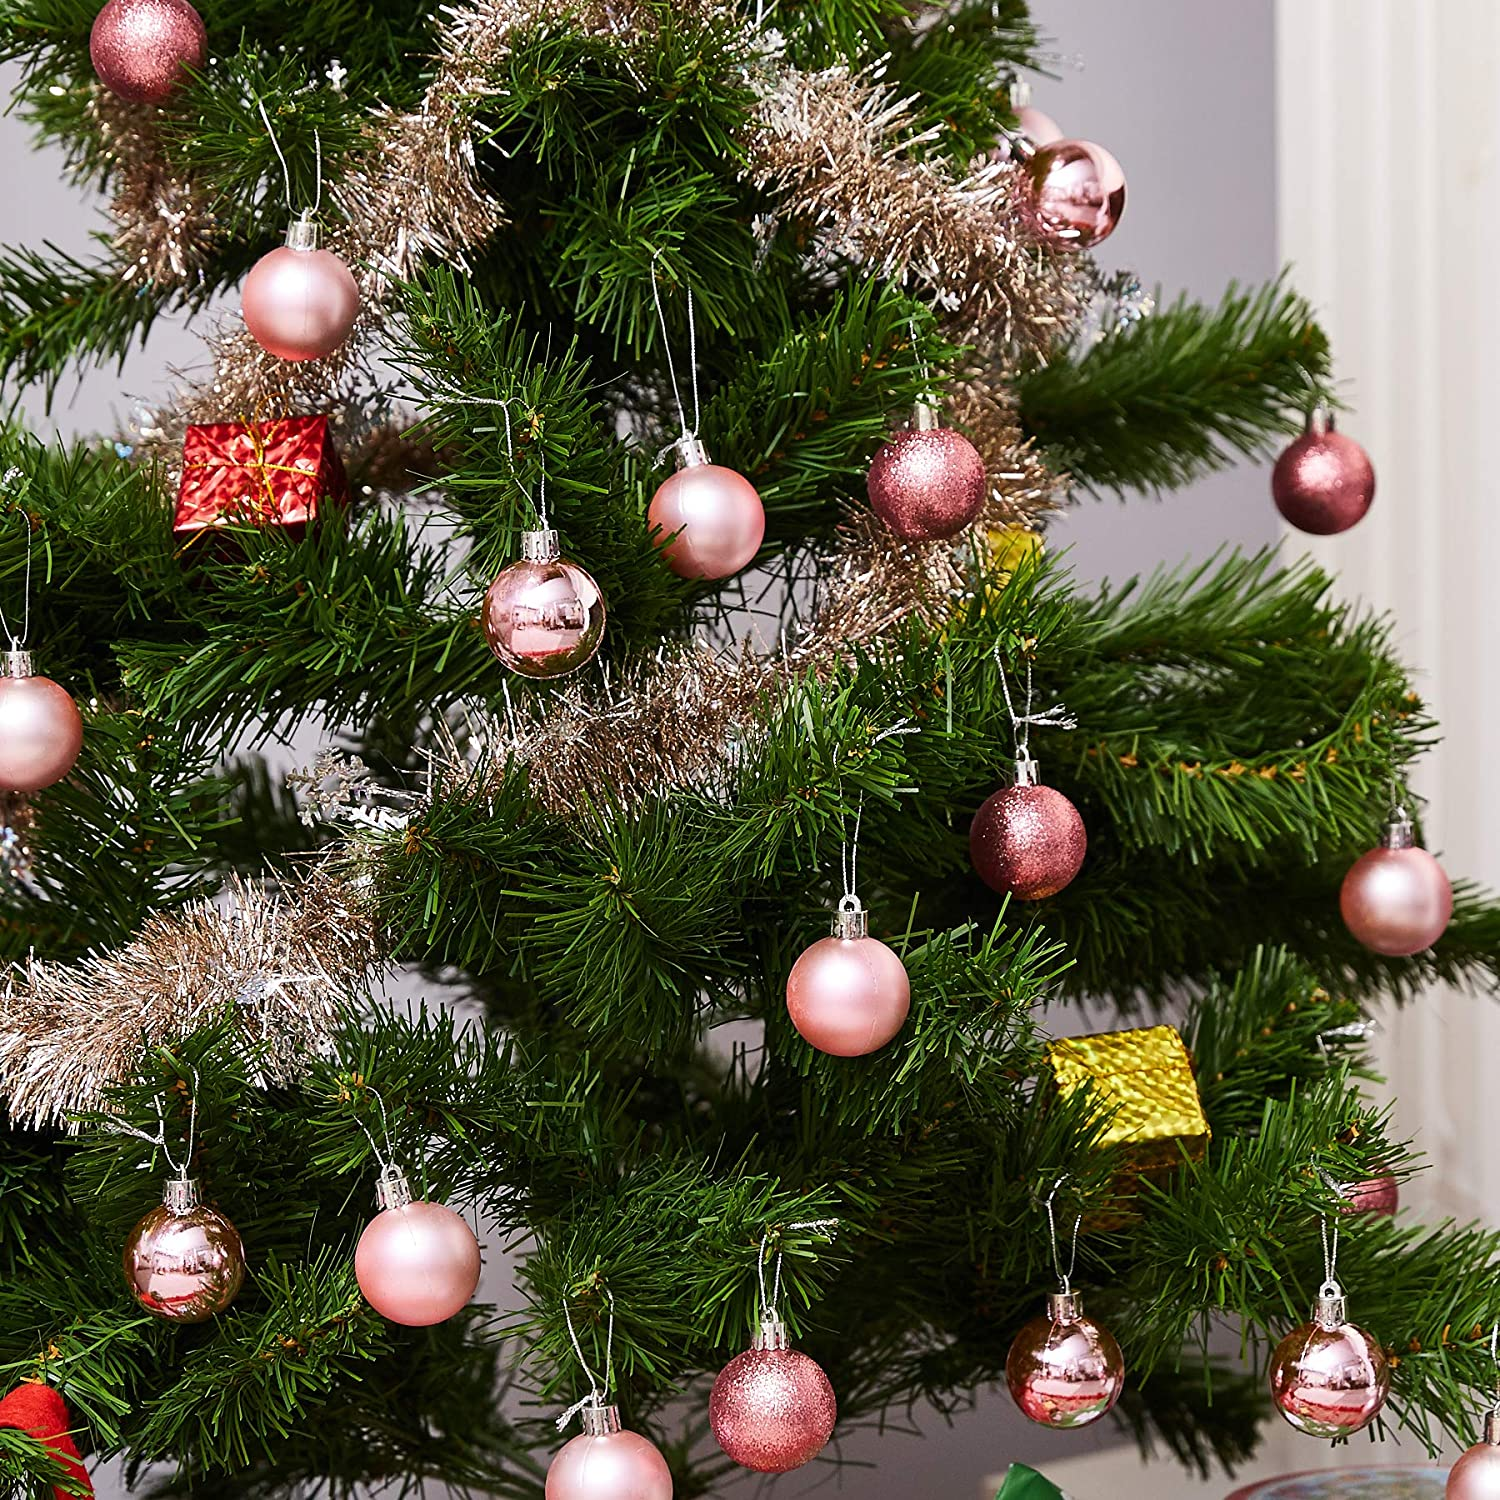 Hanging Plastic Bauble Holiday Decor Pink Shatterproof Small Christmas Balls Decoration Assorted 3-Finish Shiny 1.5 Inches Glitter Matte Juvale 48-Pack Mini Christmas Tree Ornaments